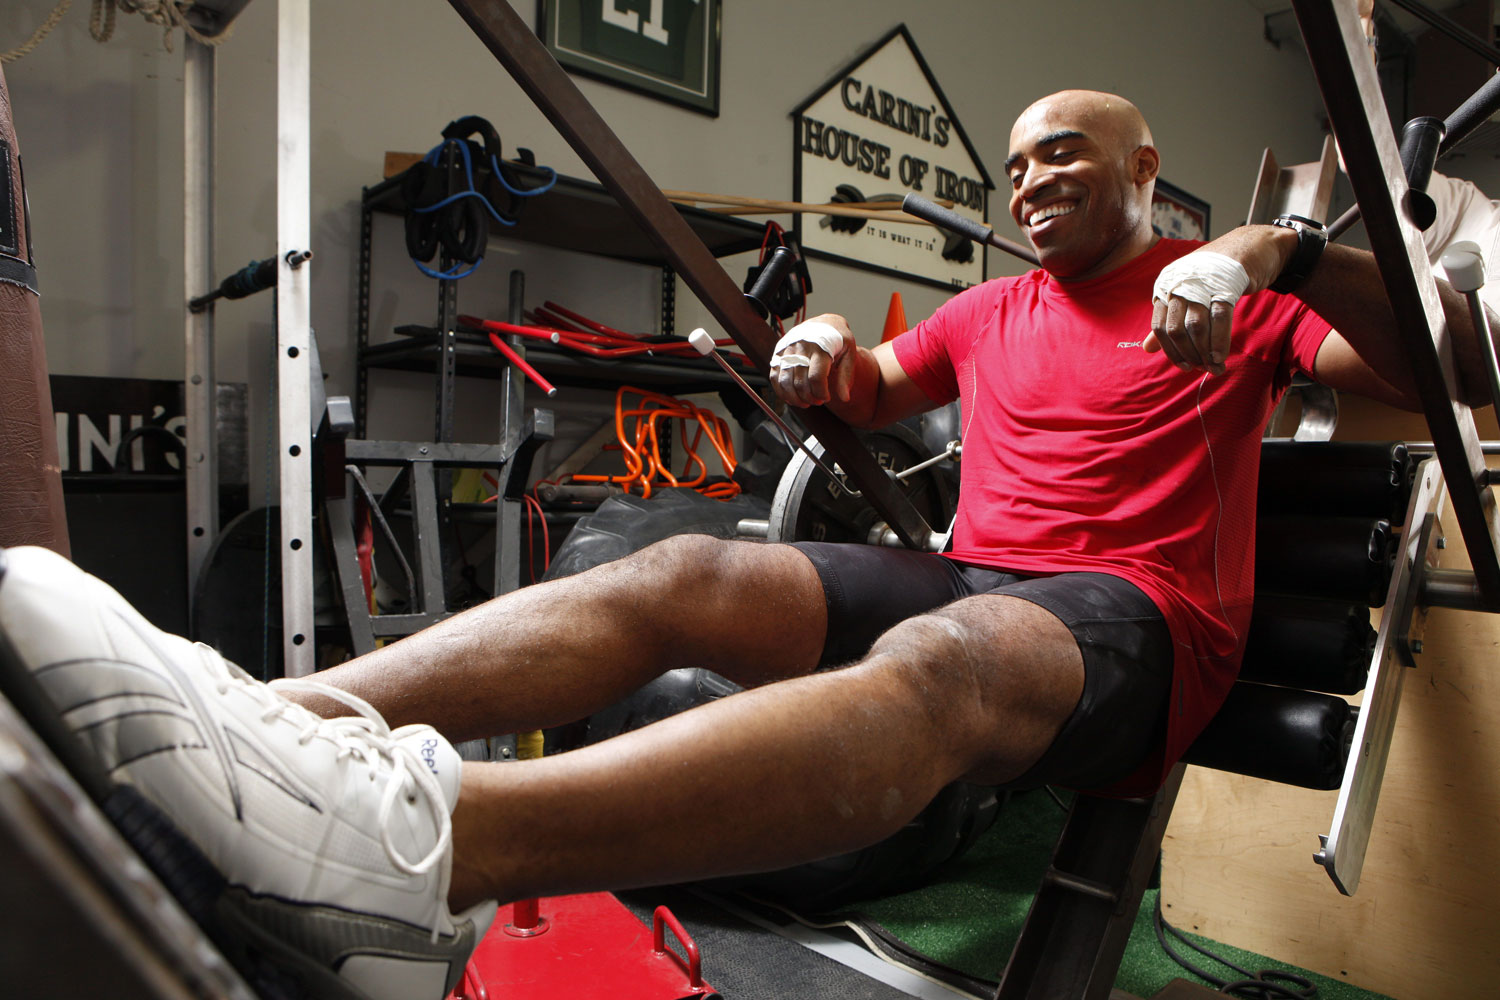 Former New York Giants running back Tiki Barber training to come back to the NFL in 2011 after abruptly retiring from the league in 2006.